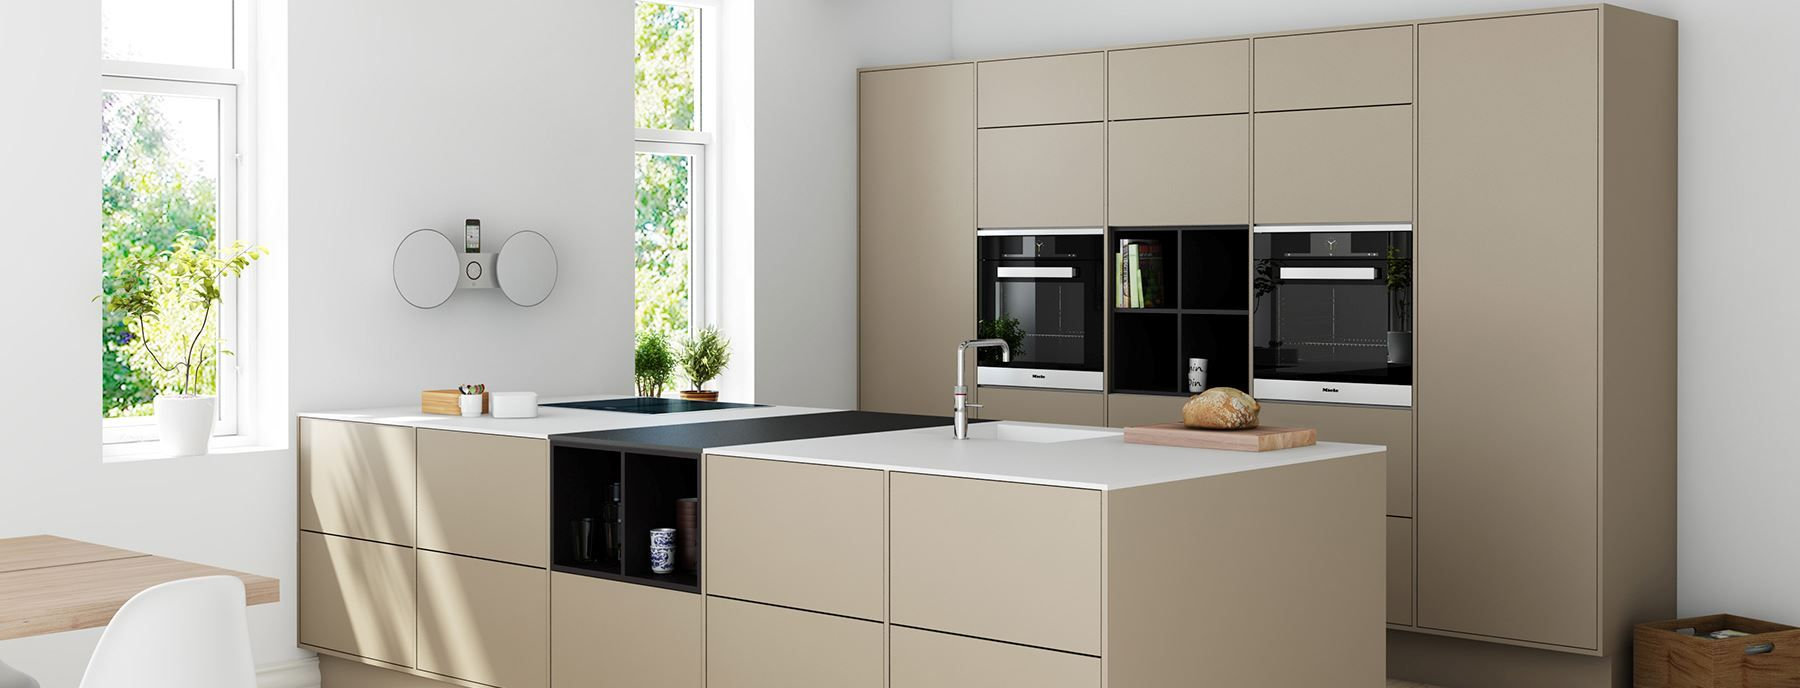 Tvis Keuken Tvis Deense Keuken My Future Home Kitchen Design Kitchen En